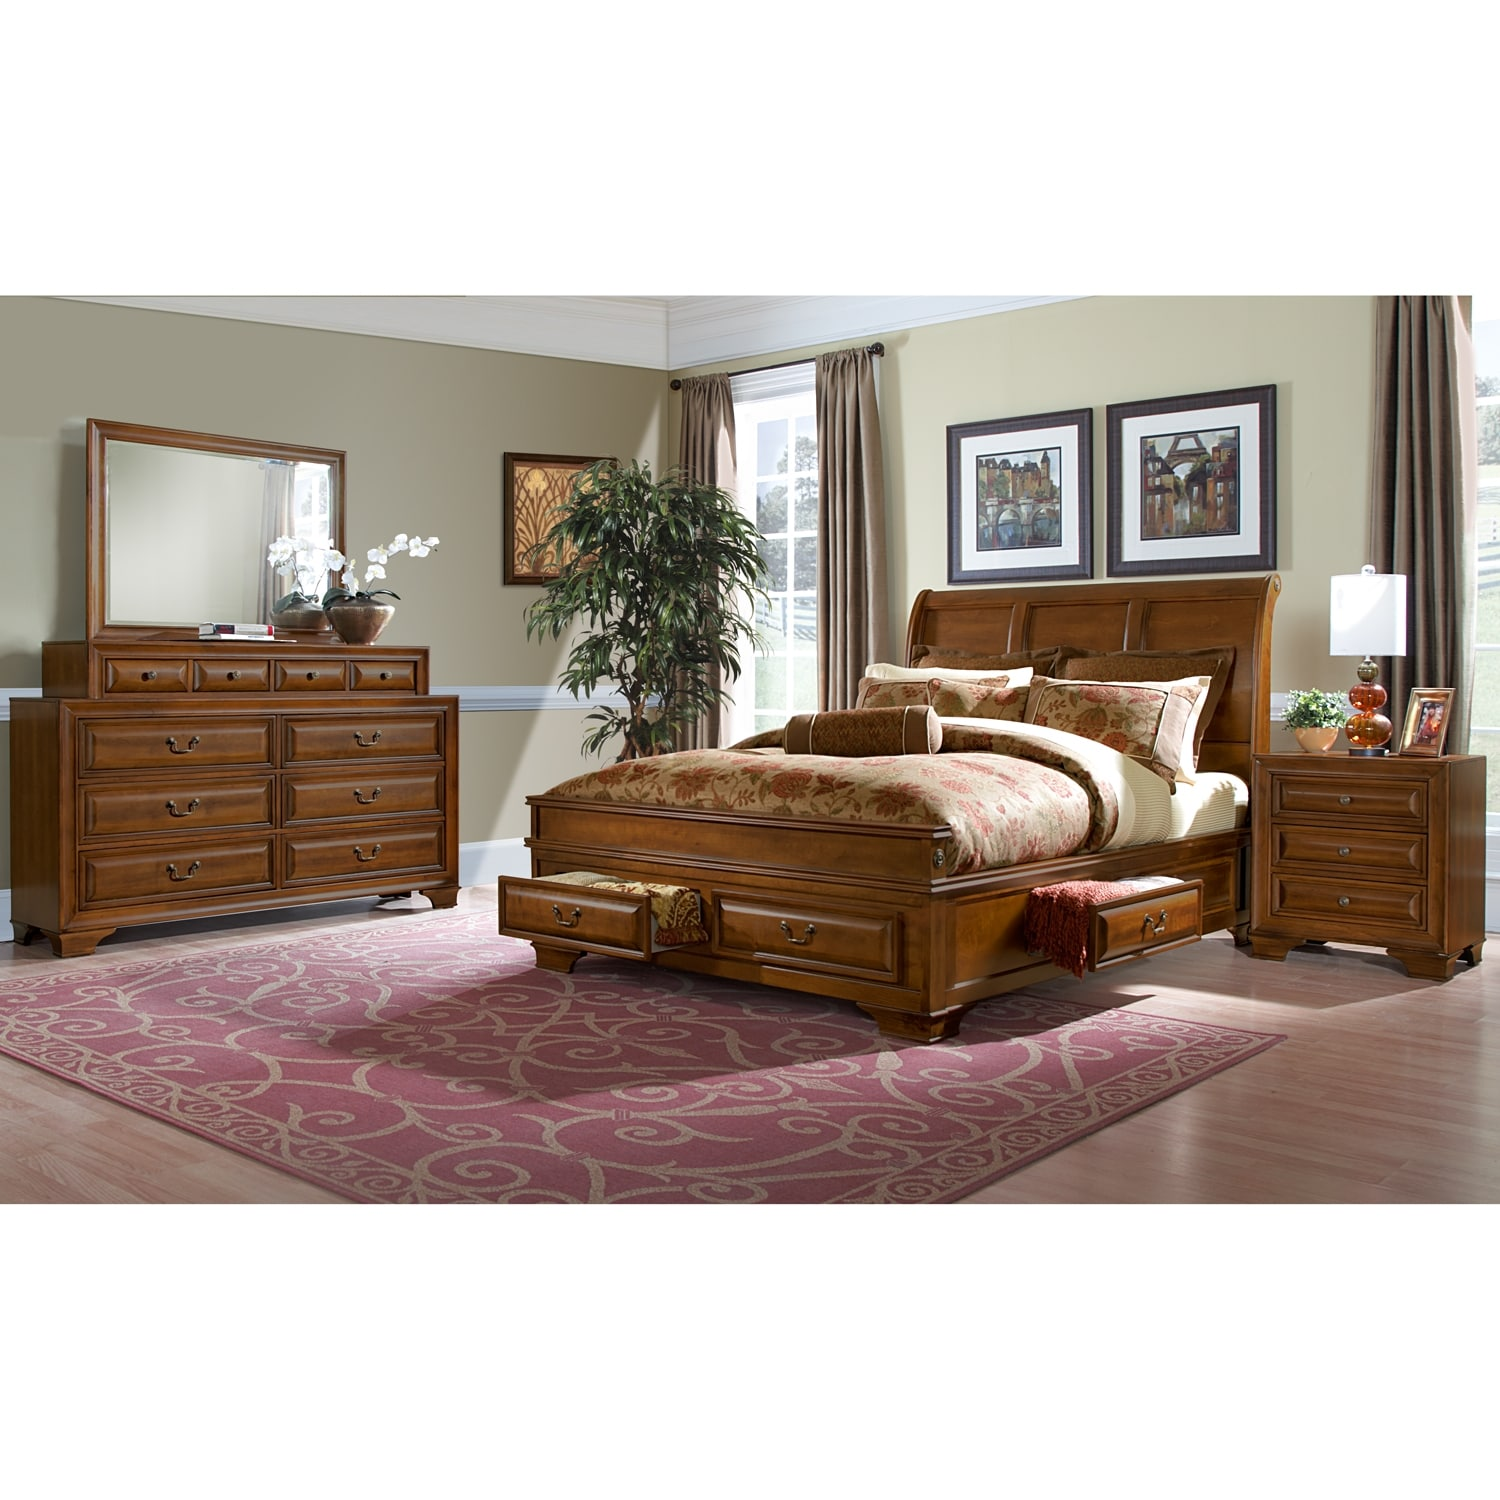 Sanibelle 6 pc queen storage bedroom american signature for American furniture bedroom furniture